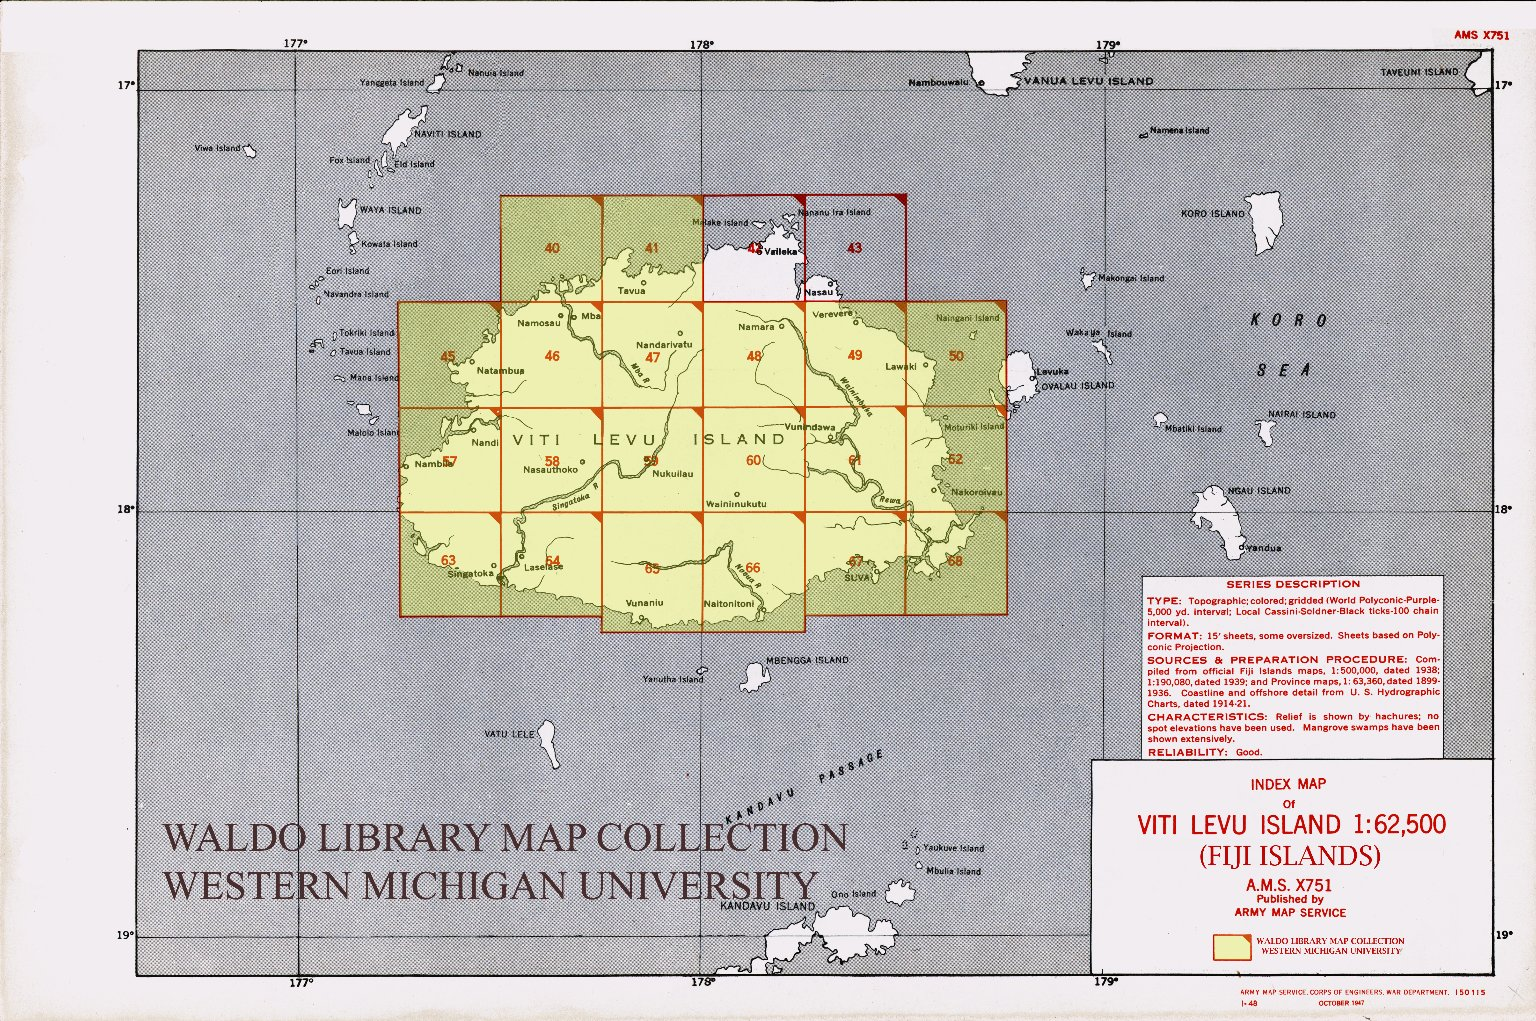 Index map of Viti Levu Island 1:62,500